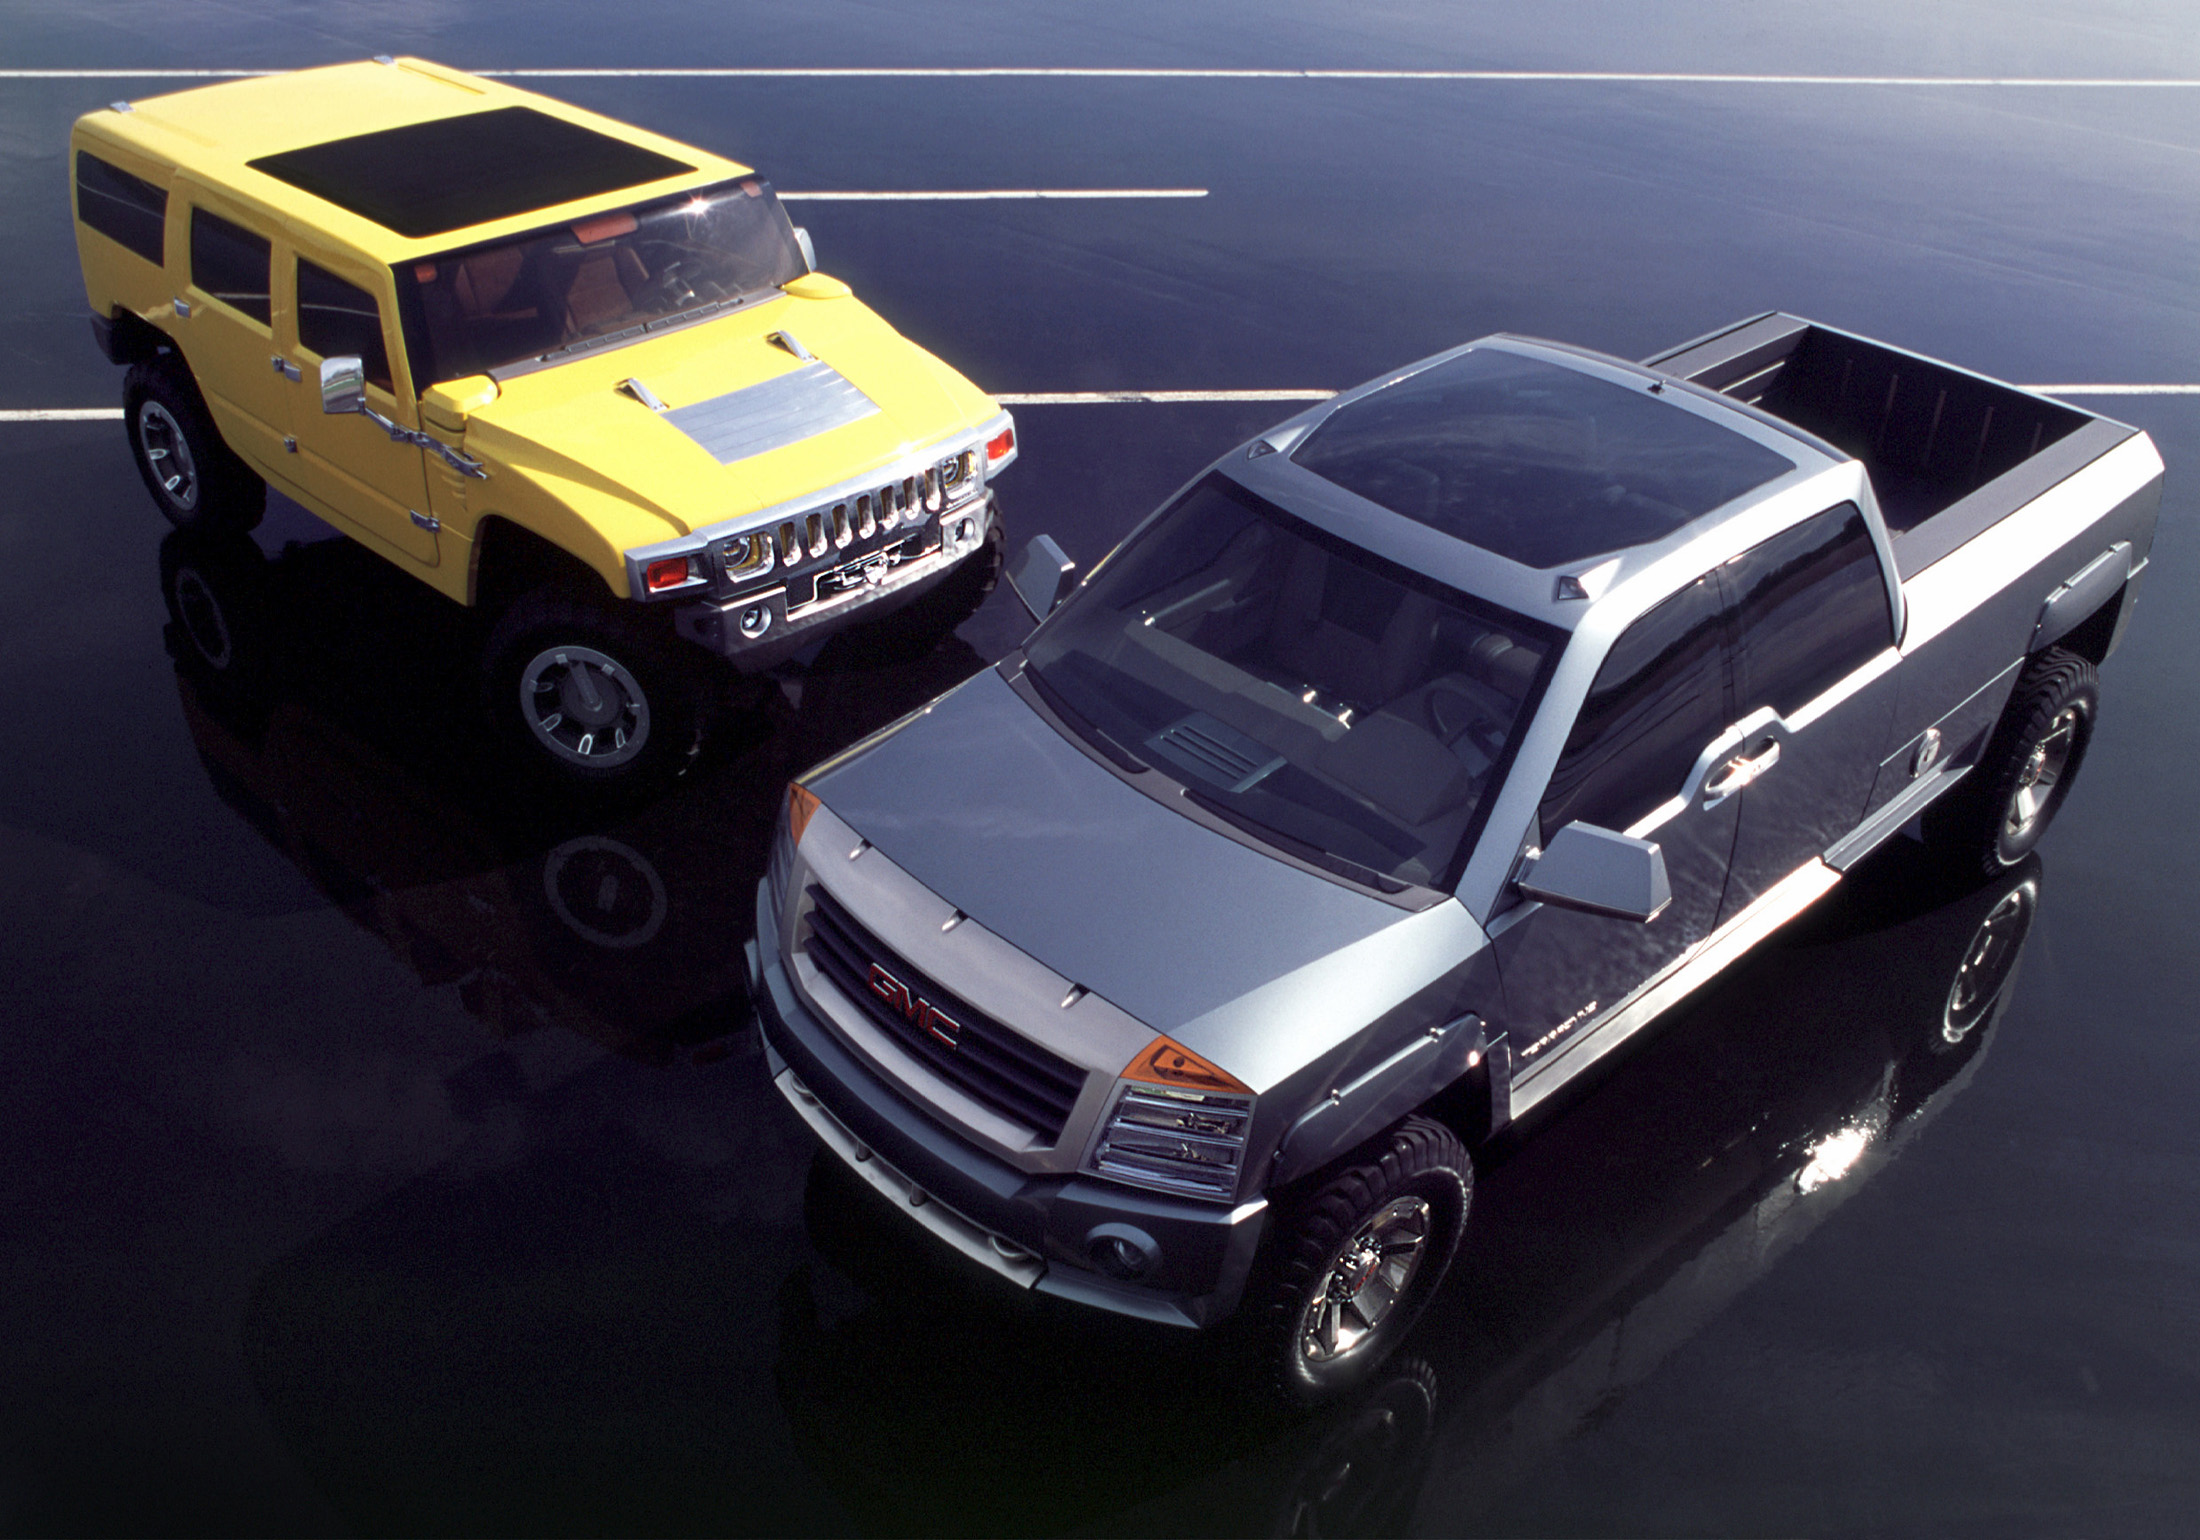 2018 Hummer H2 SUV Concept photo - 5